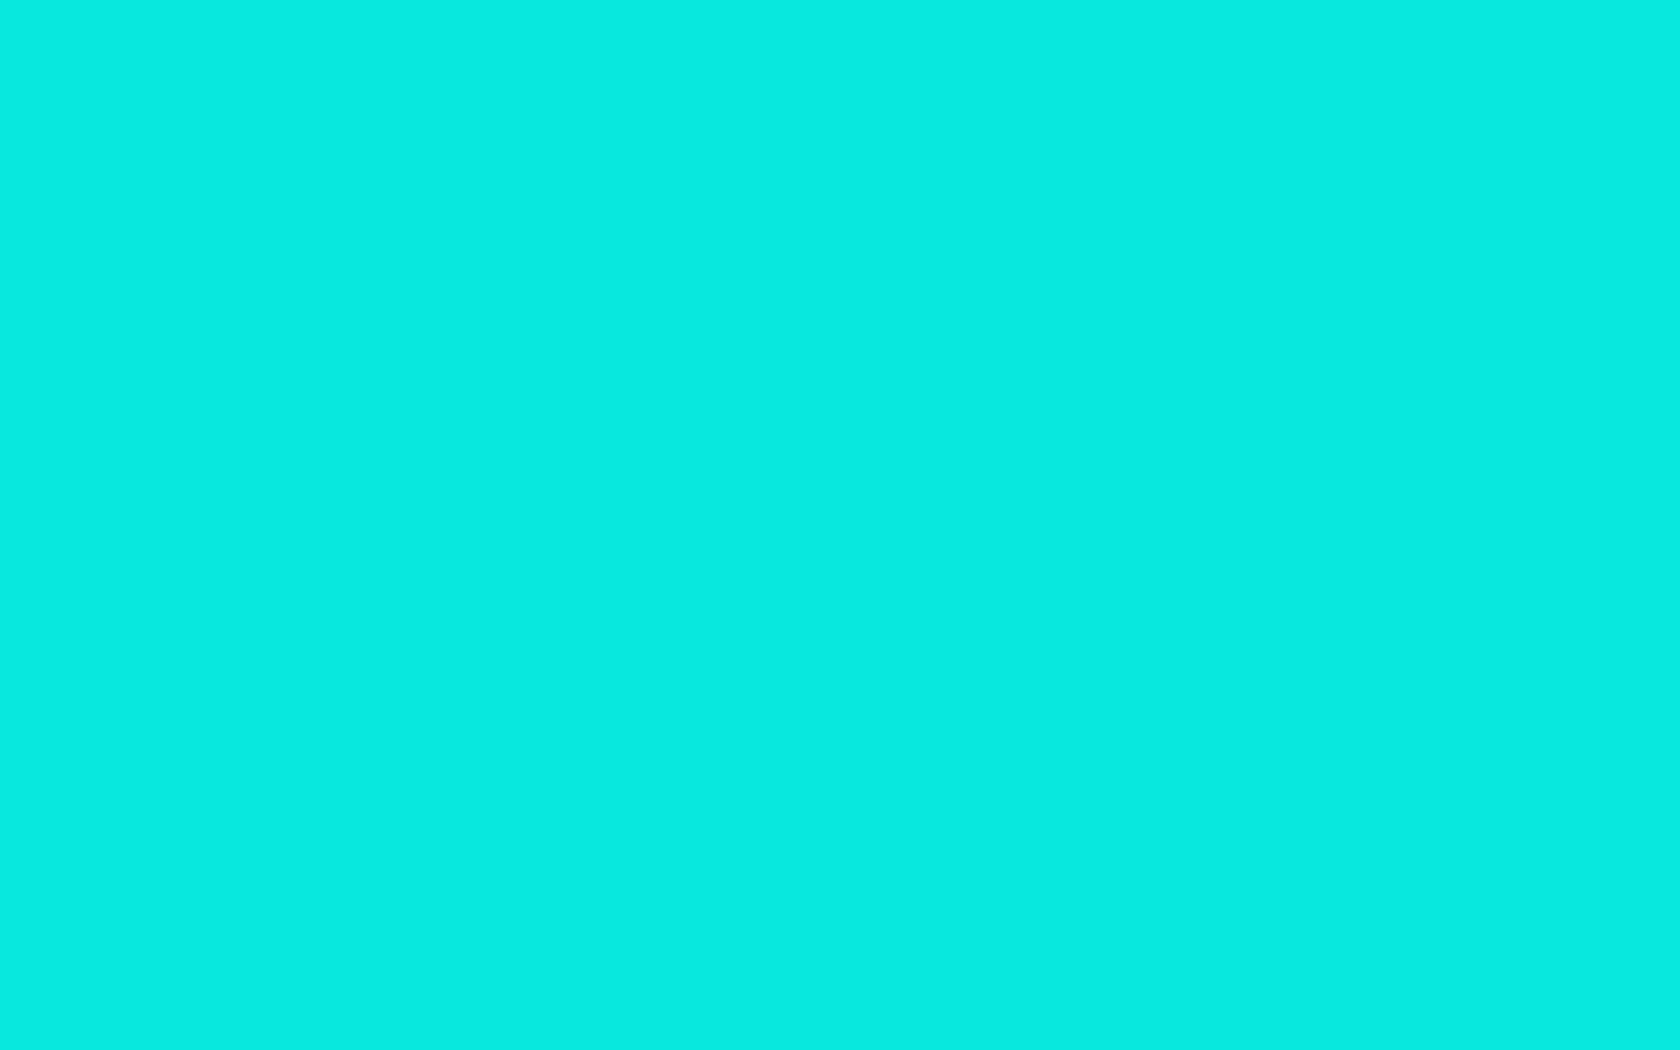 1680x1050 Bright Turquoise Solid Color Background